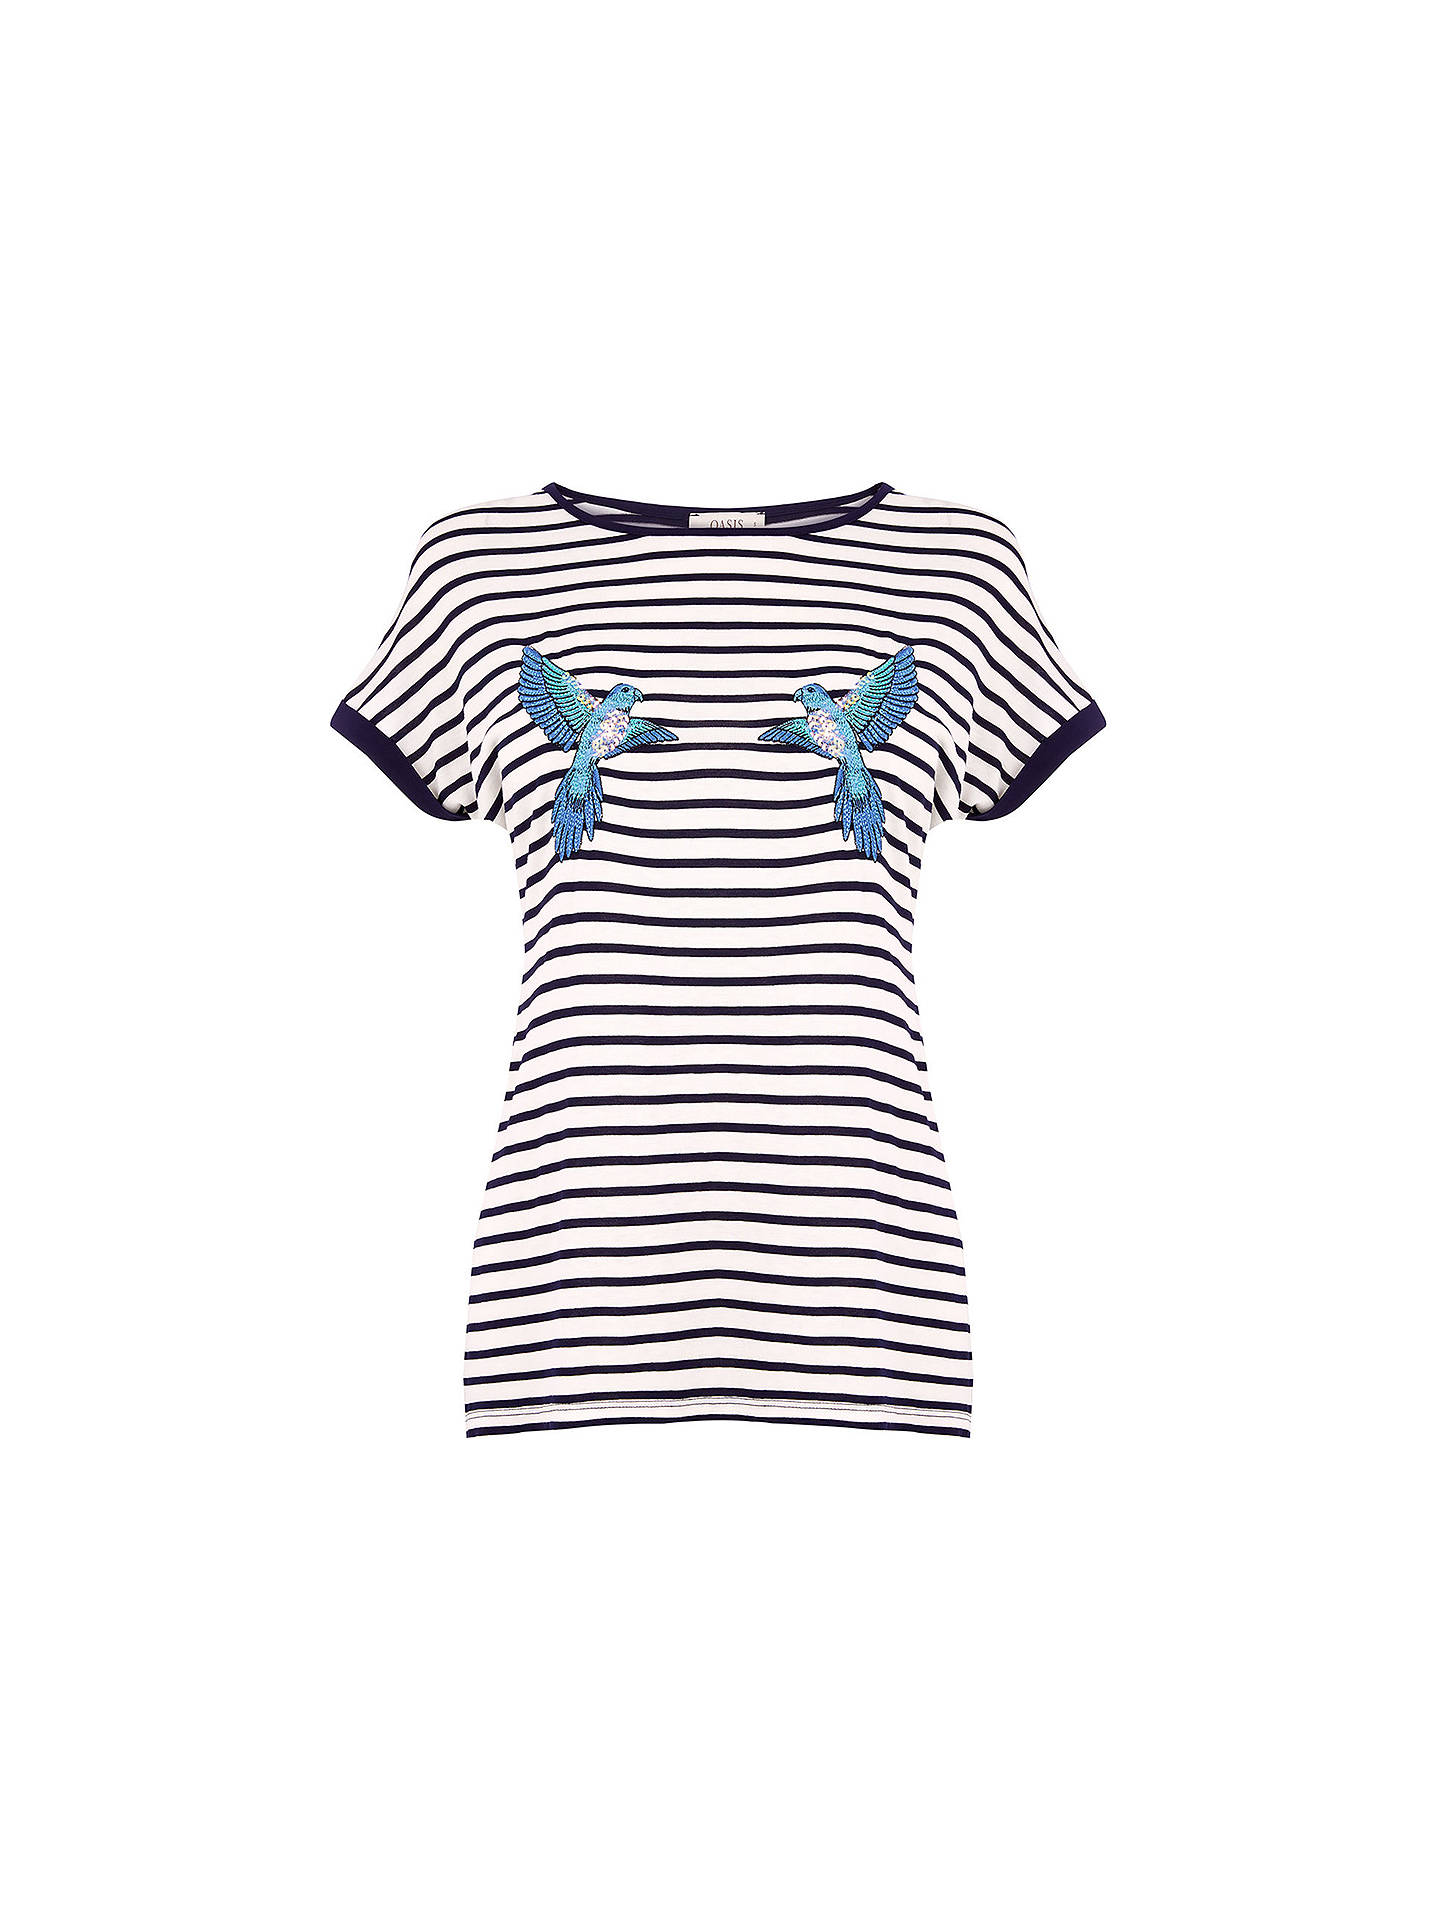 BuyOasis Parakeet Stripe Top, Multi, XS Online at johnlewis.com